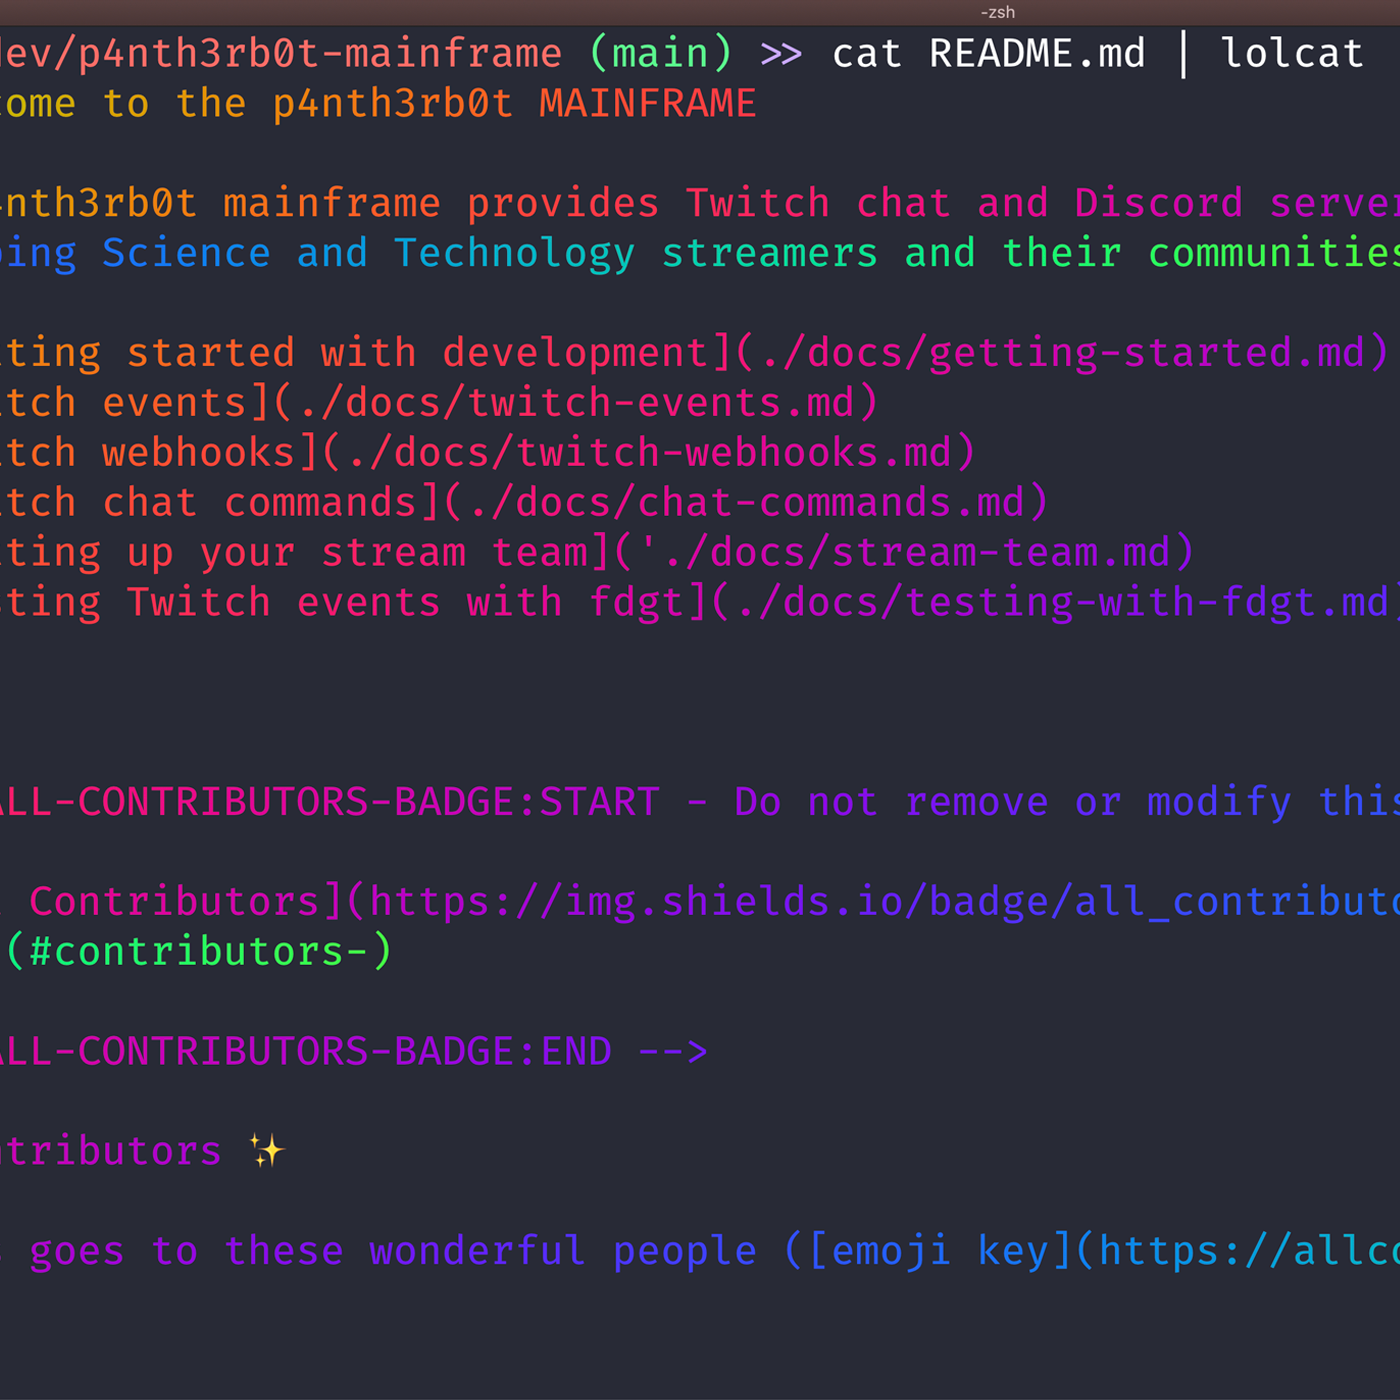 A screenshot of a terminal with the command cat README.md | lolcat